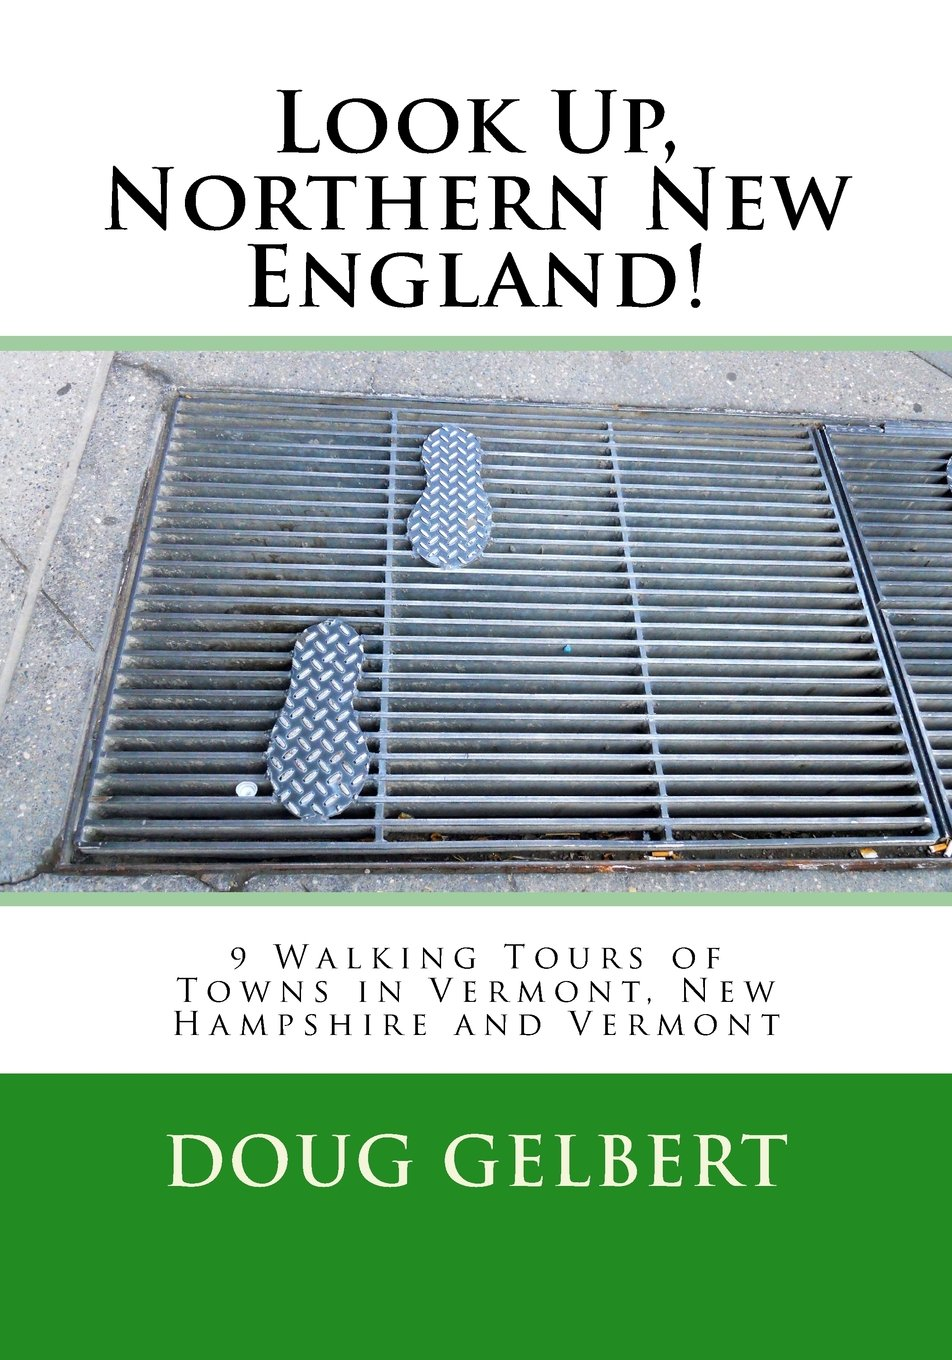 Look Up, Northern New England!: 9 Walking Tours of Towns in Vermont, New Hampshire and Vermont pdf epub